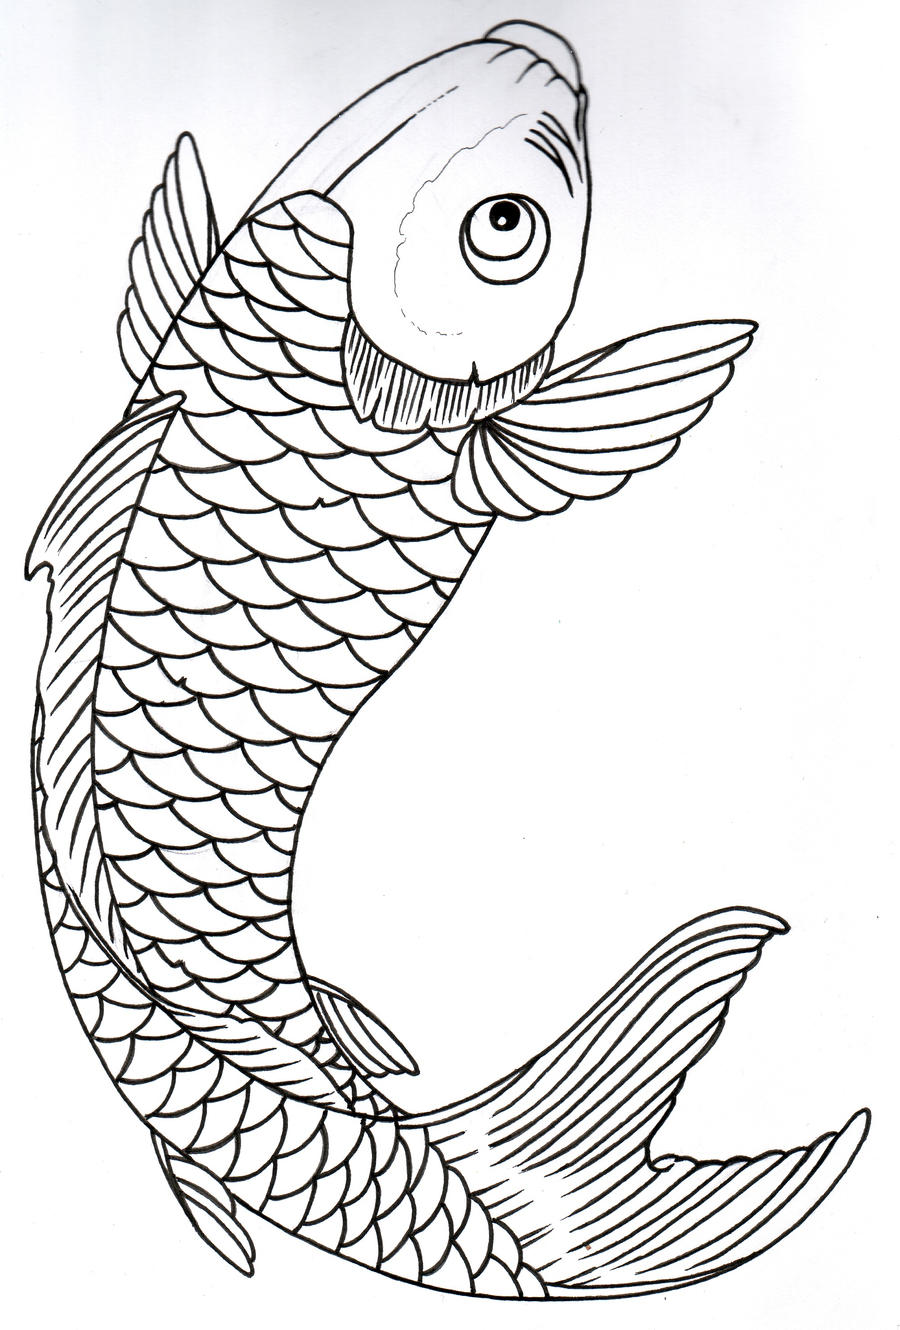 Koi Outline 10 by vikingtattoo on DeviantArt